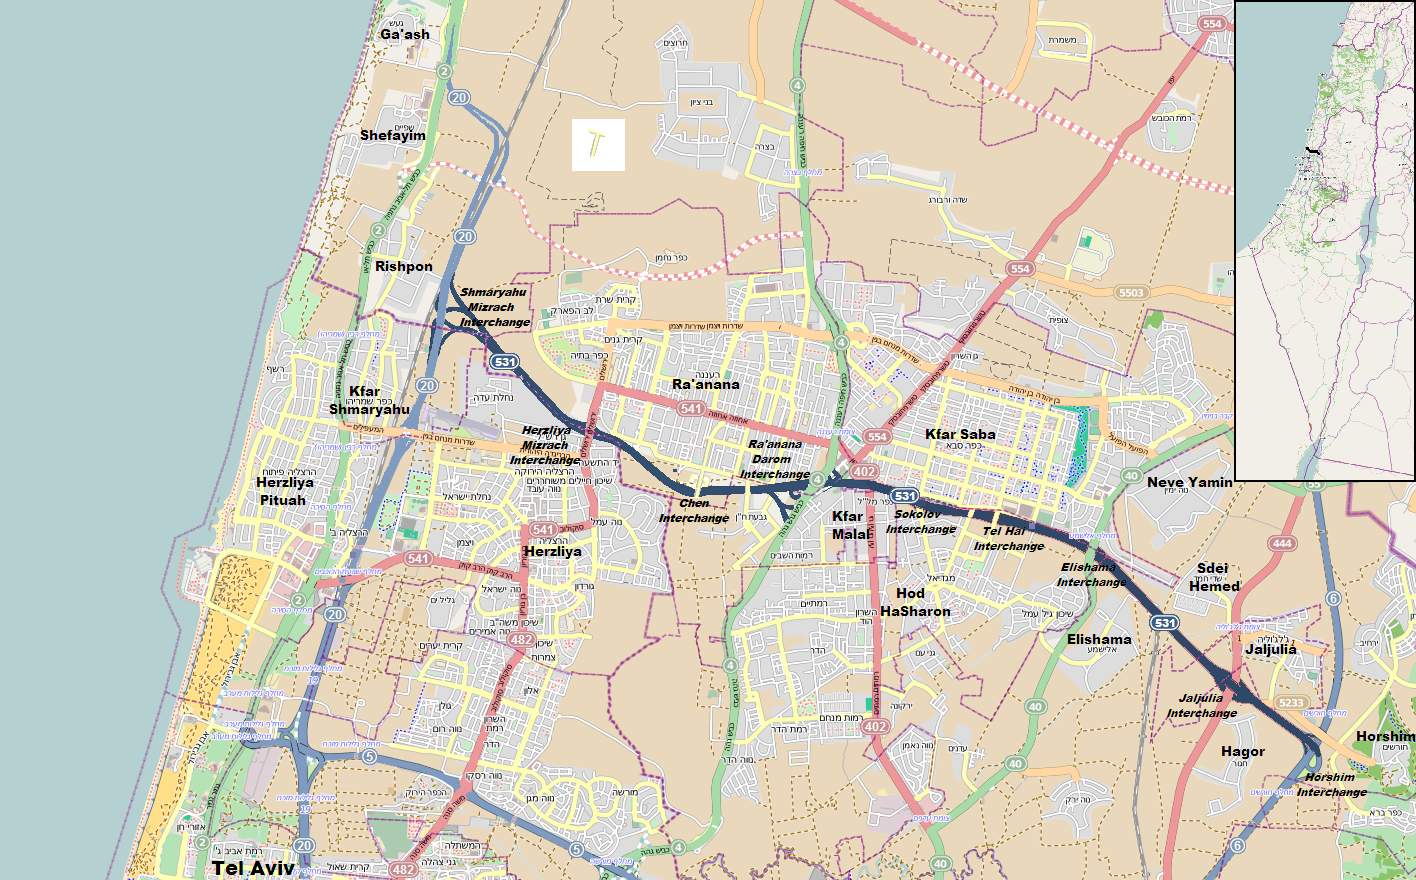 Route 531 (Israel) - Wikipedia on map of jerusalem, map of elat, map of herzliya, map of sadr city, map of rafah, map of west bank, map of golan heights, map of dead sea, map of palestine, map of shibam, map of damascus, map of timnah, map of ginosar, map of beirut, map of tripoli, map of istanbul, map of kabul, map of eliat, map of perm, map of sorocaba,